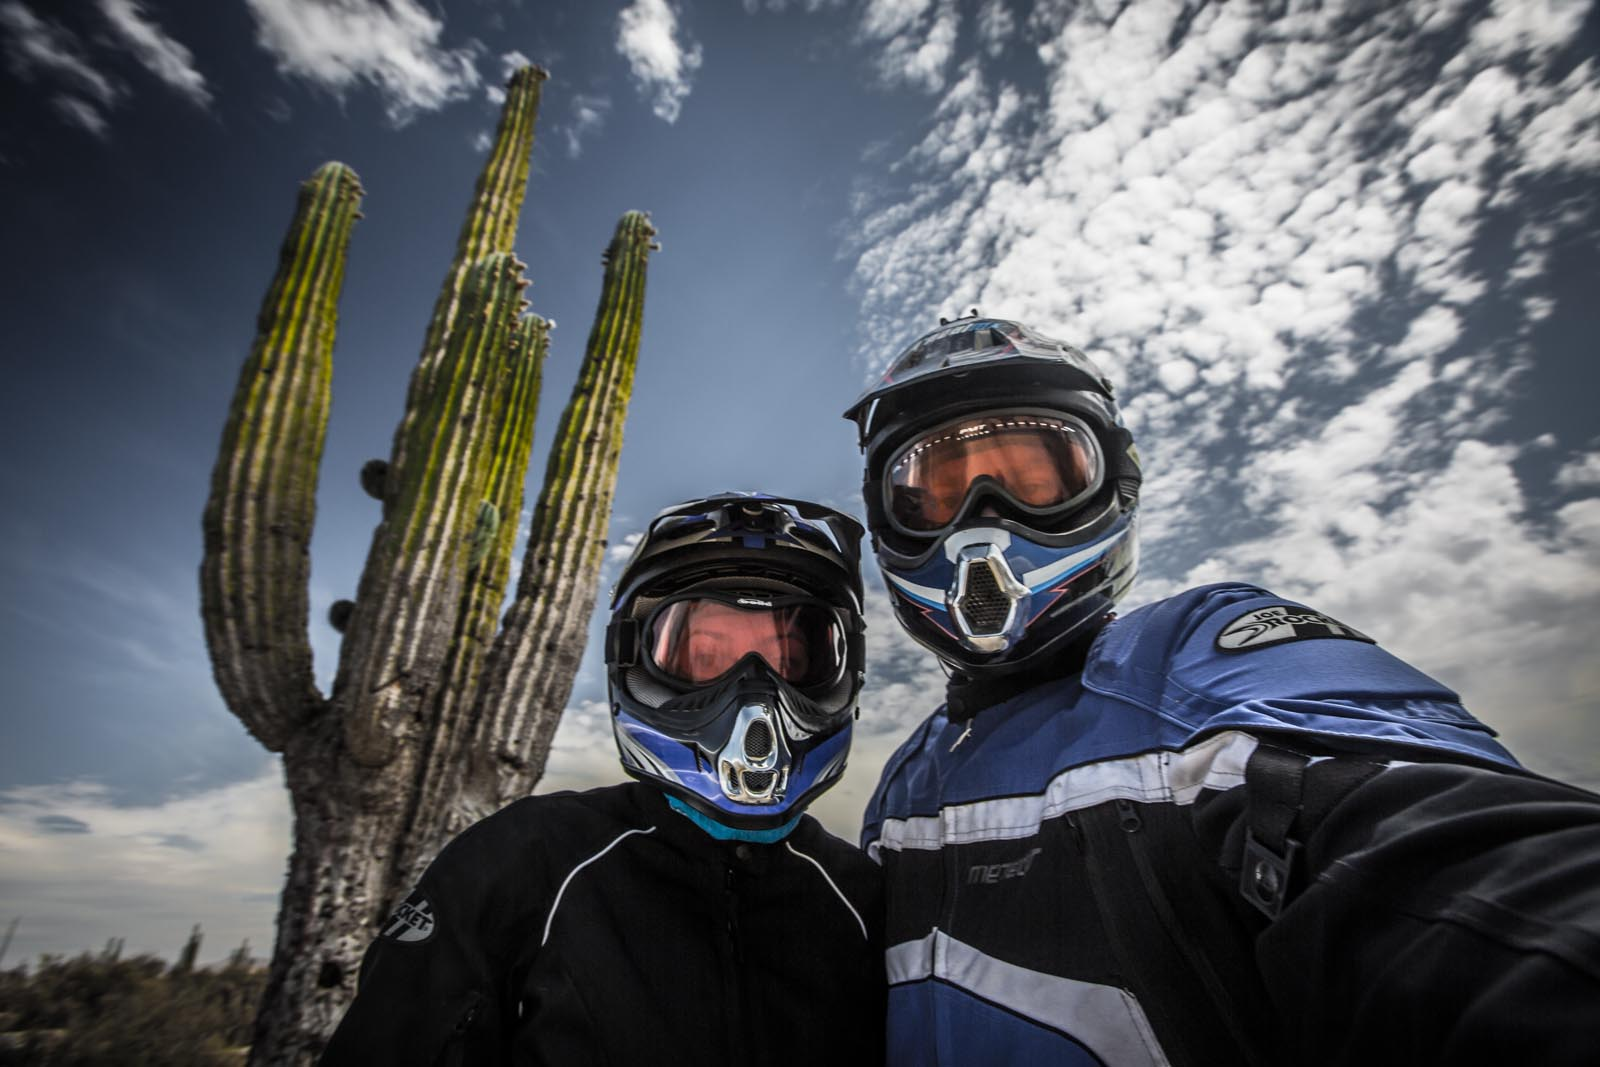 The air in the desert after the rain is so intensely clean and fragrant that we had to keep our helmets and masks on for this cactus shot.